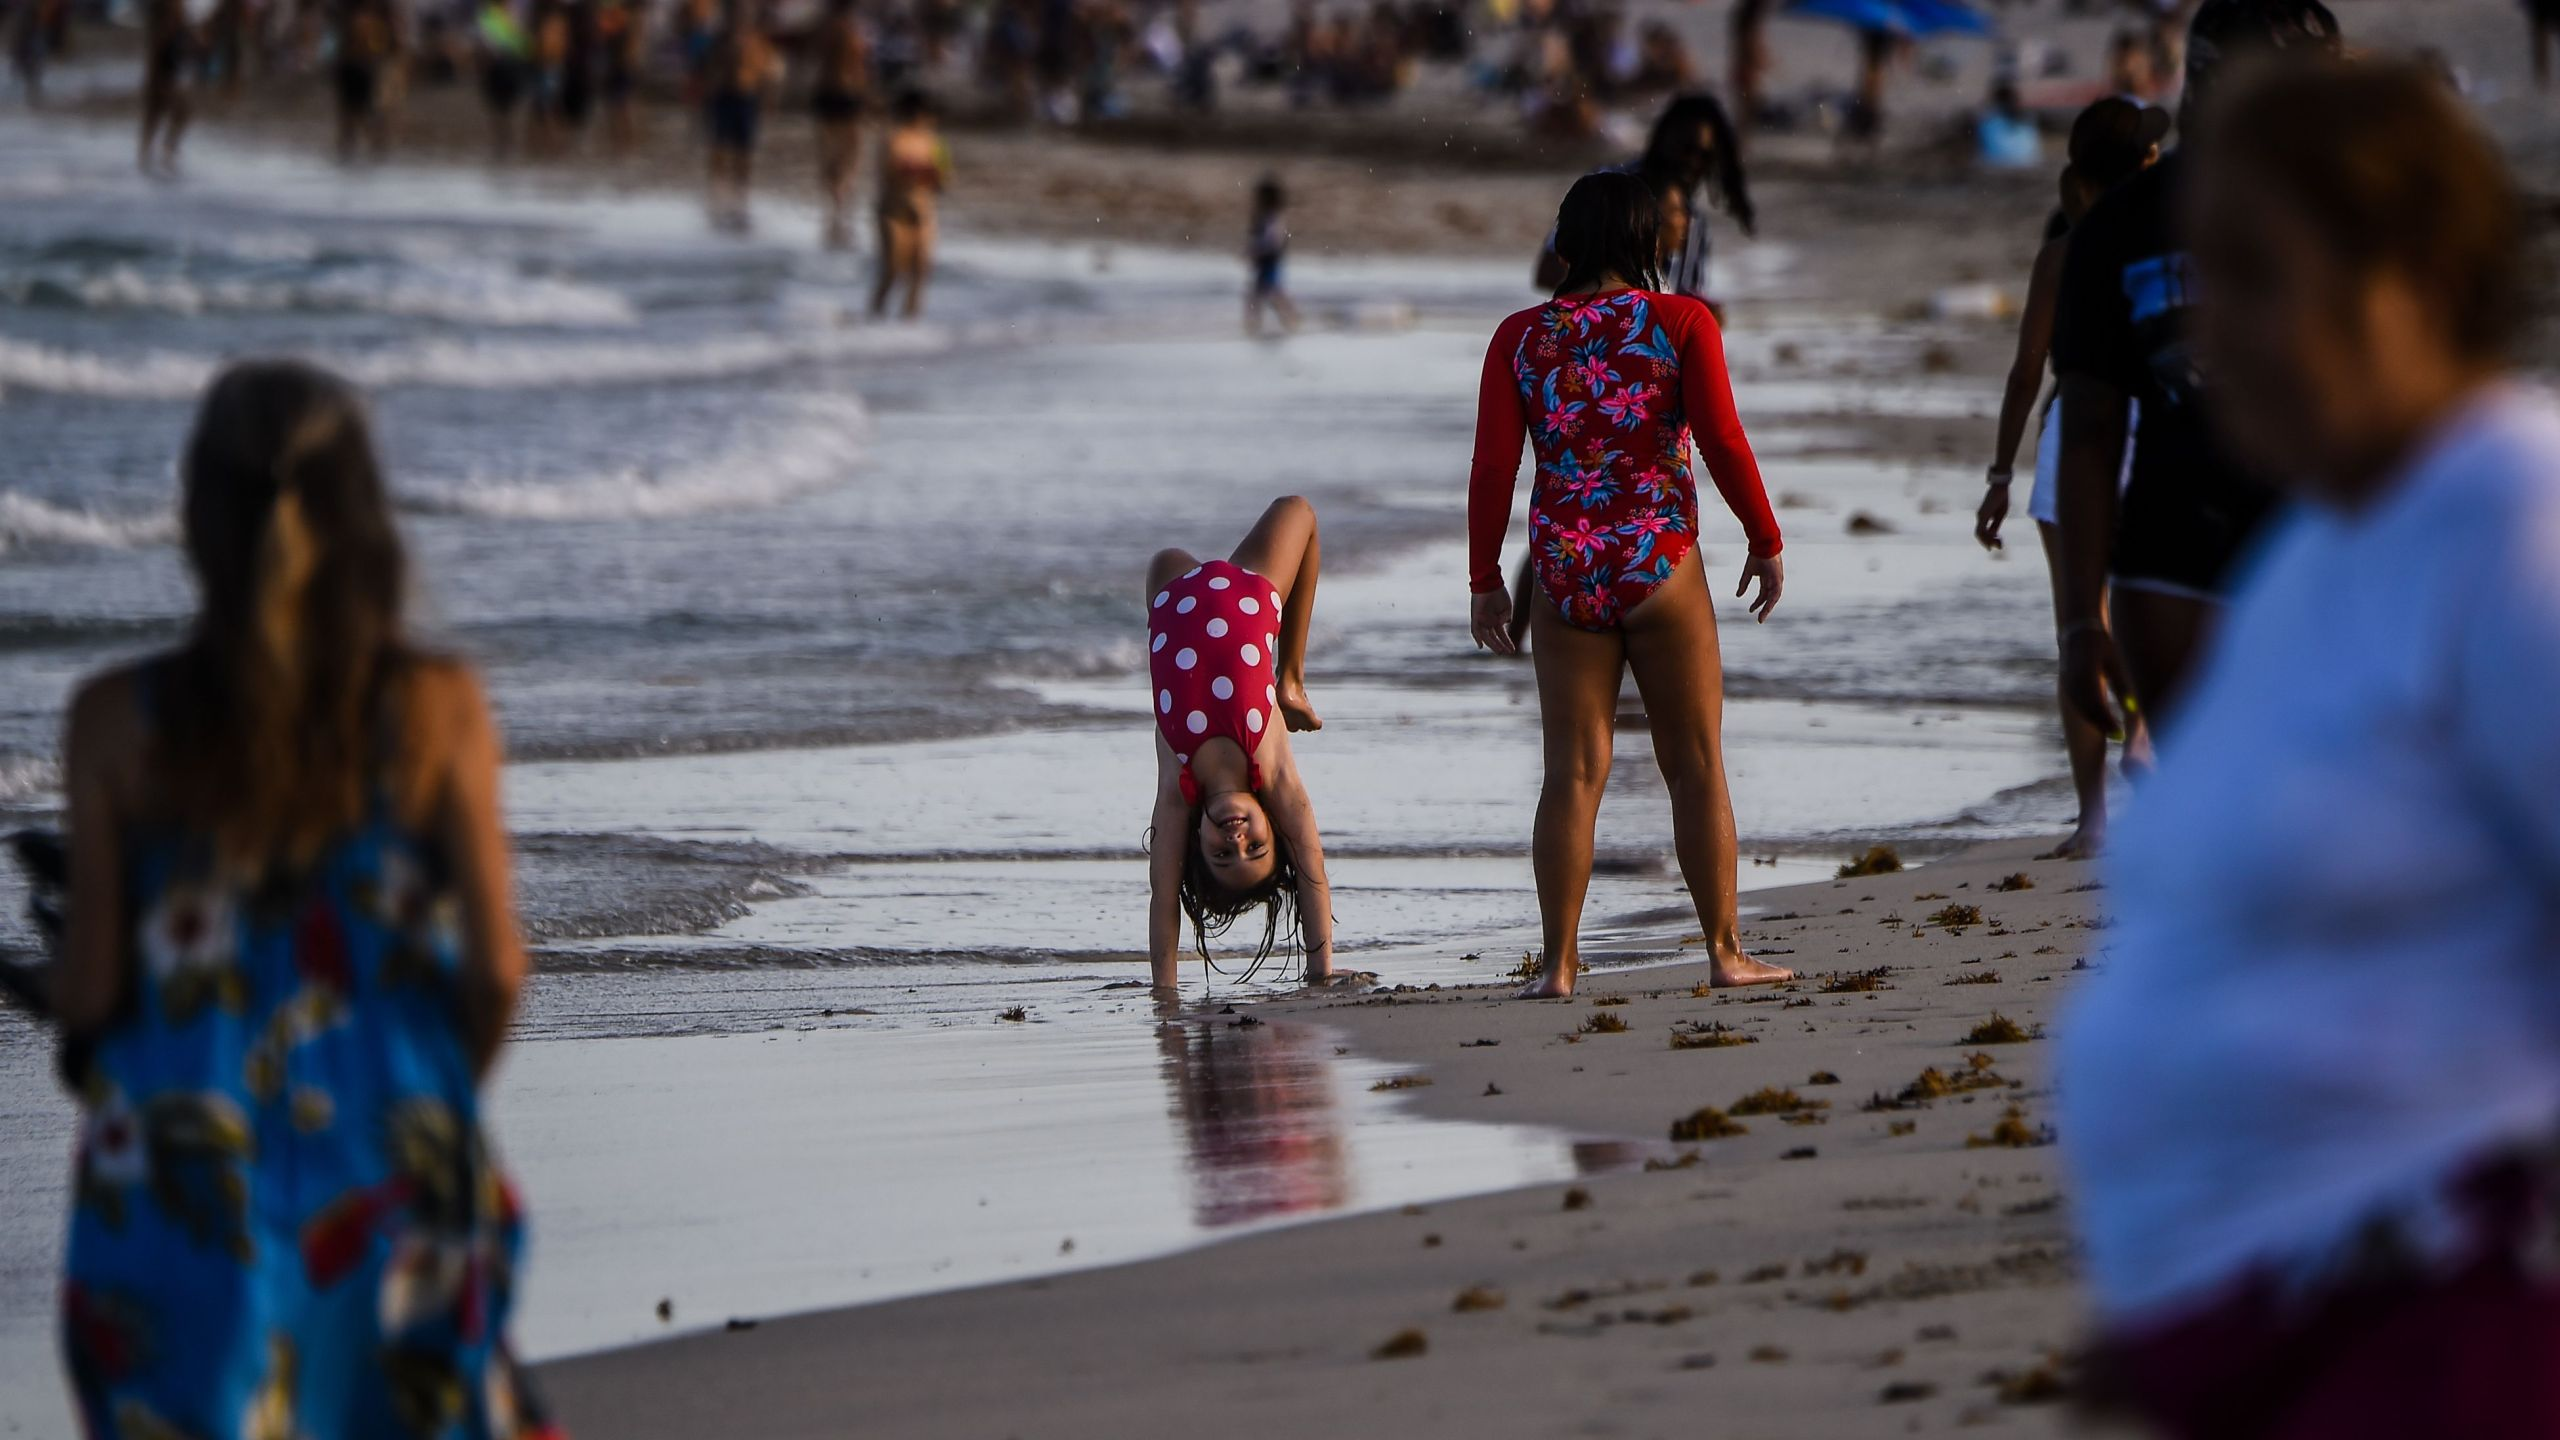 Children play on the beach in Miami Beach, Florida on July 28, 2020, amid the coronavirus pandemic. (CHANDAN KHANNA/AFP via Getty Images)